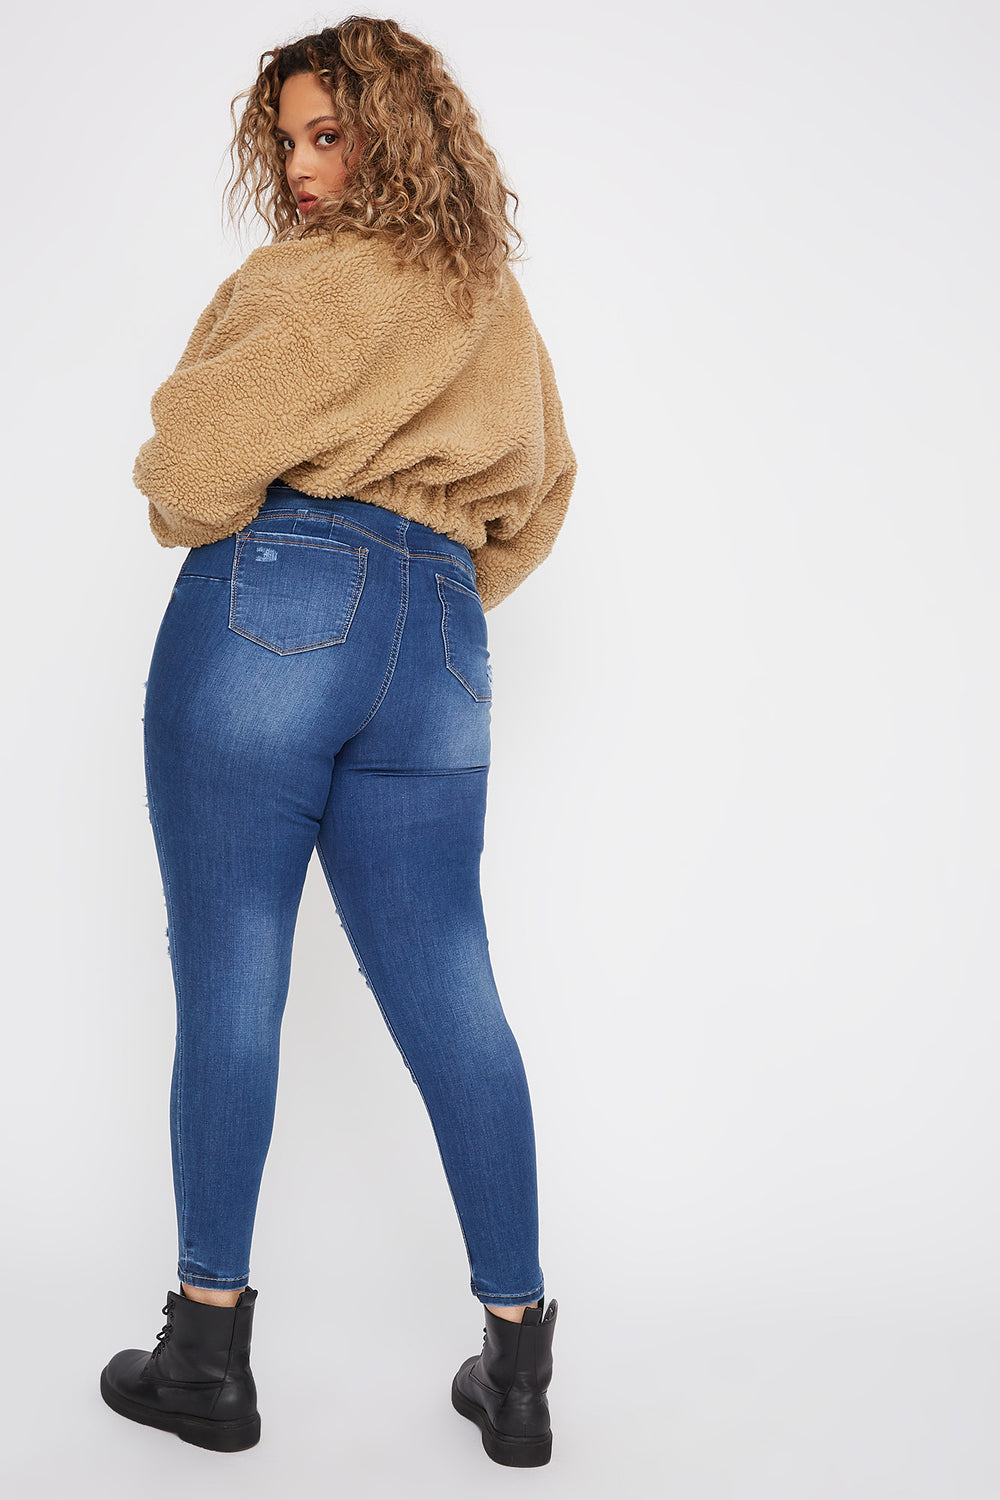 Plus Size Butt, I Love You High-Rise Distressed Push-Up Skinny Jean Medium Blue